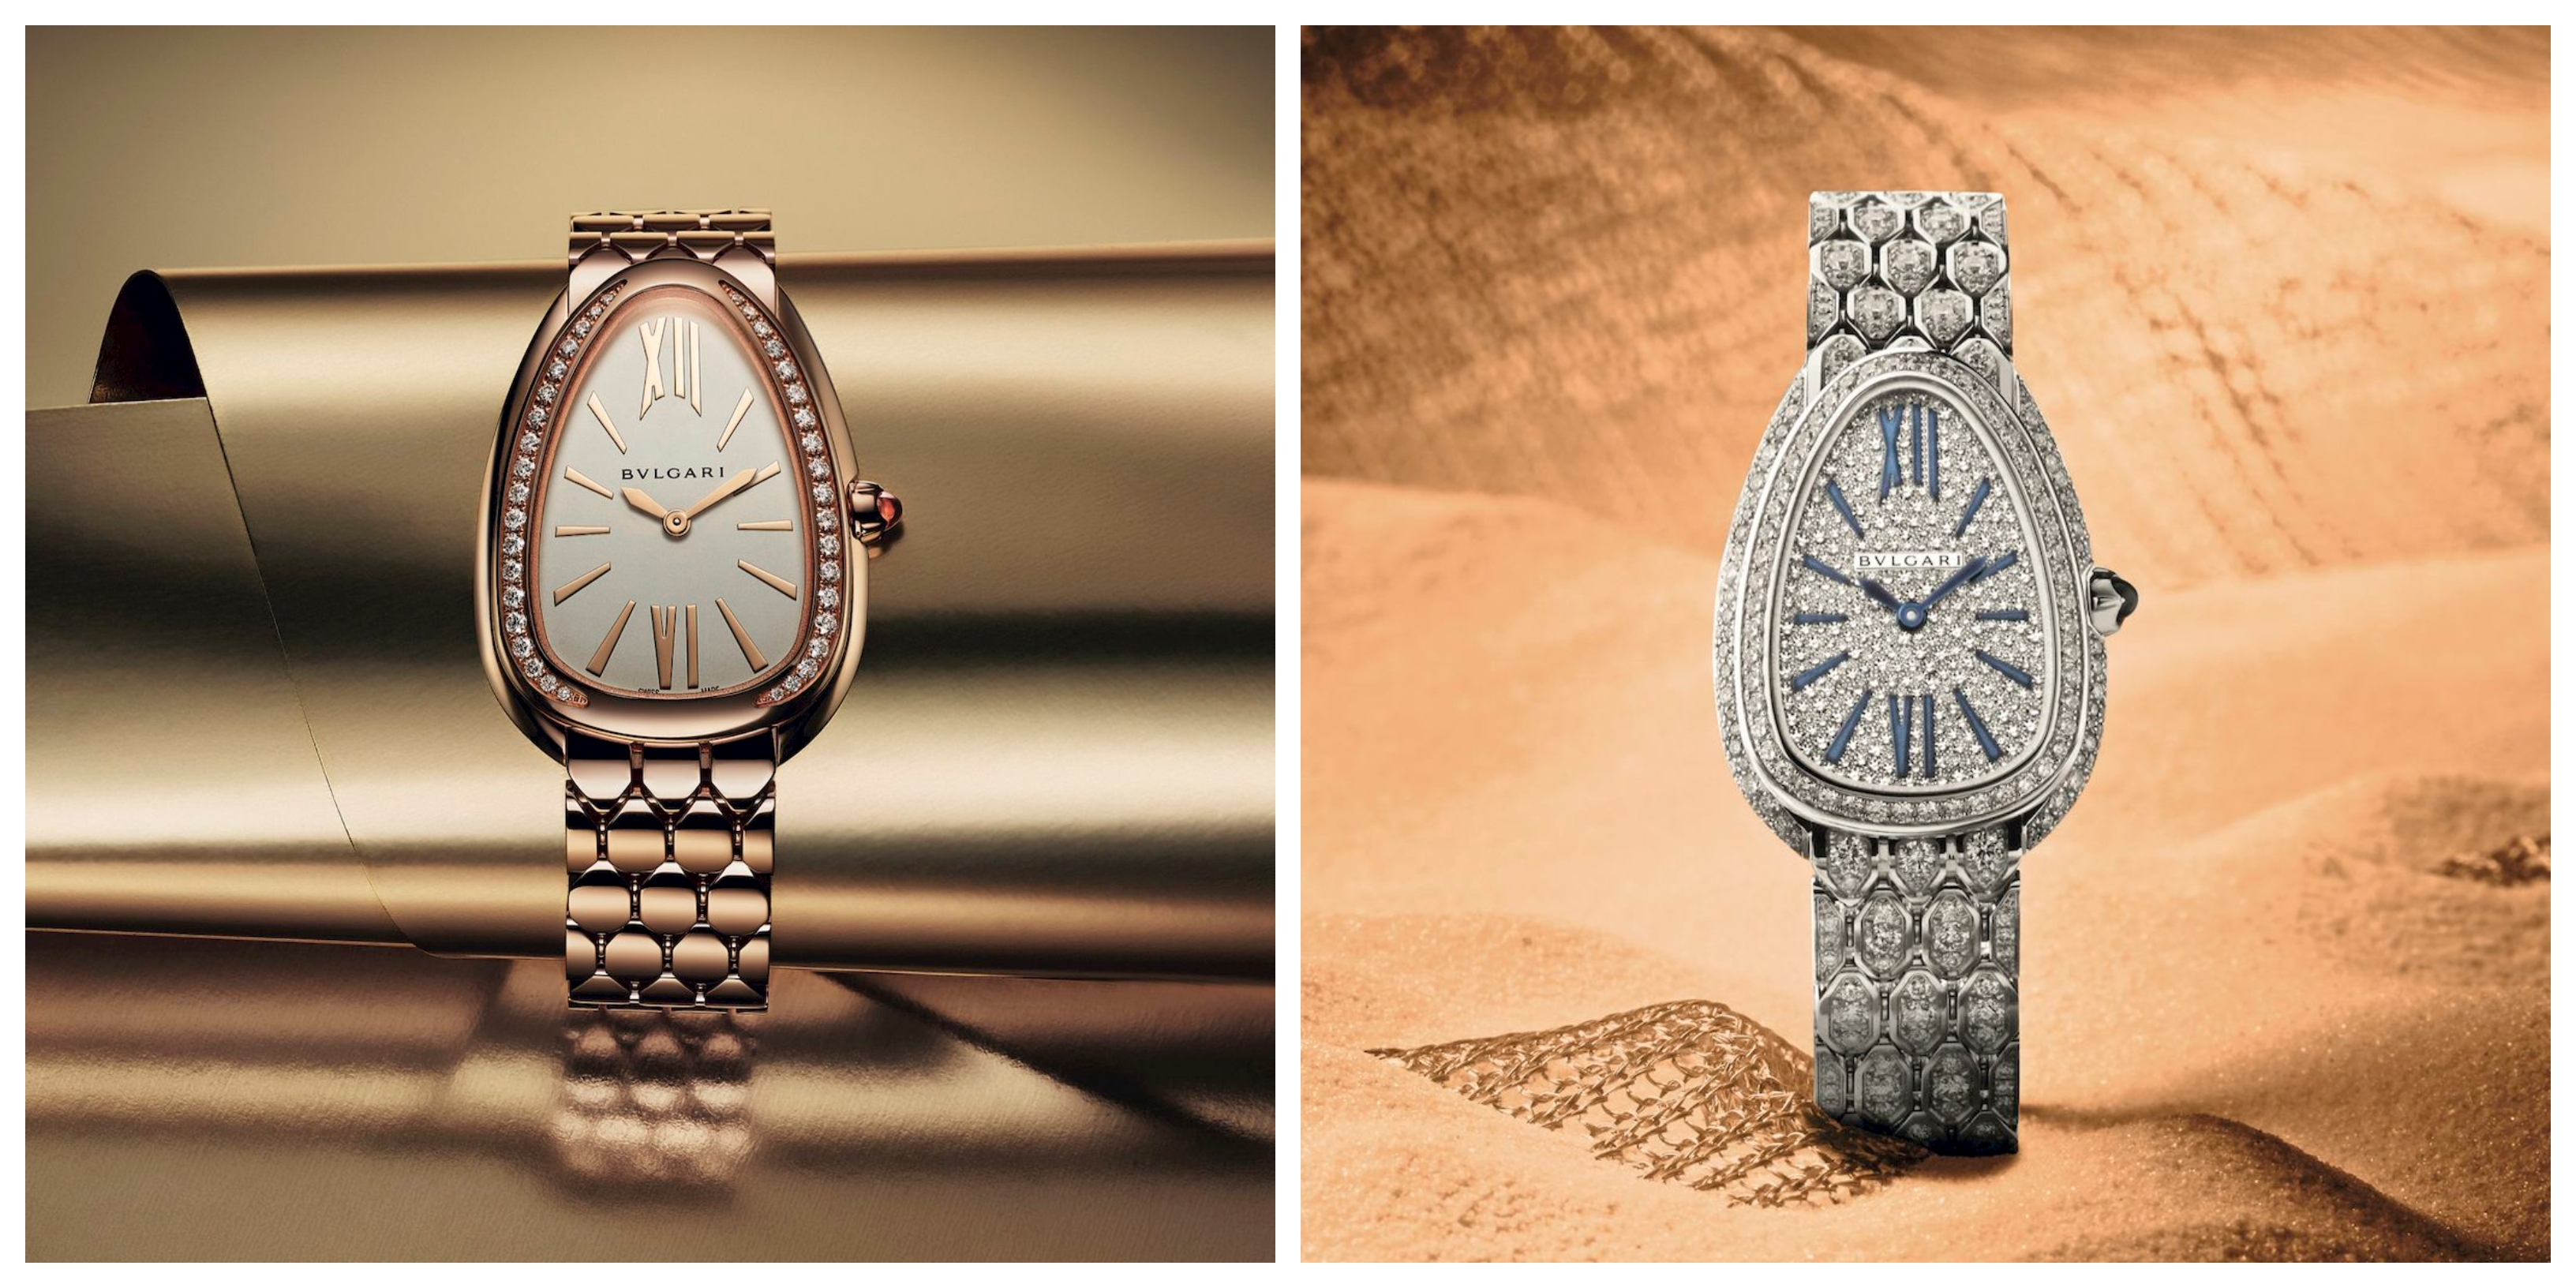 The serpent takes different forms in Bvlgari's jewellery watches under the Serpenti line.